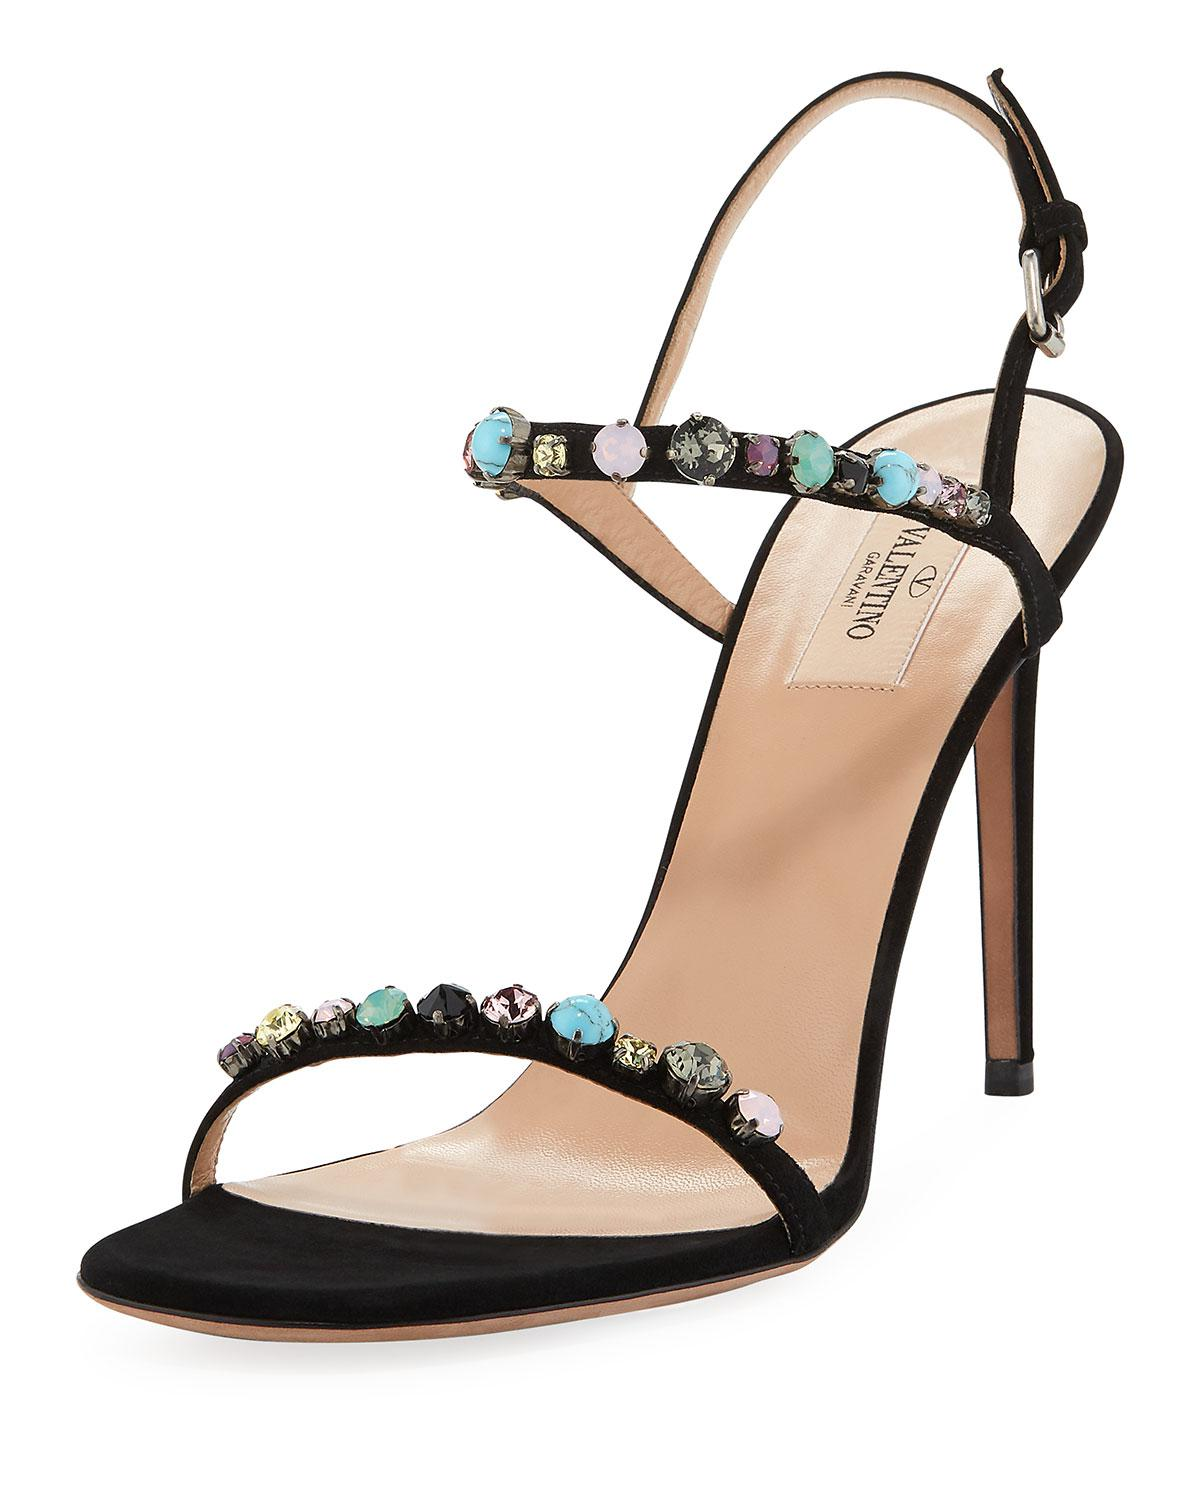 0724cc1dd2bc ... Jeweled Suede Ankle-strap Sandals - Lyst. View fullscreen